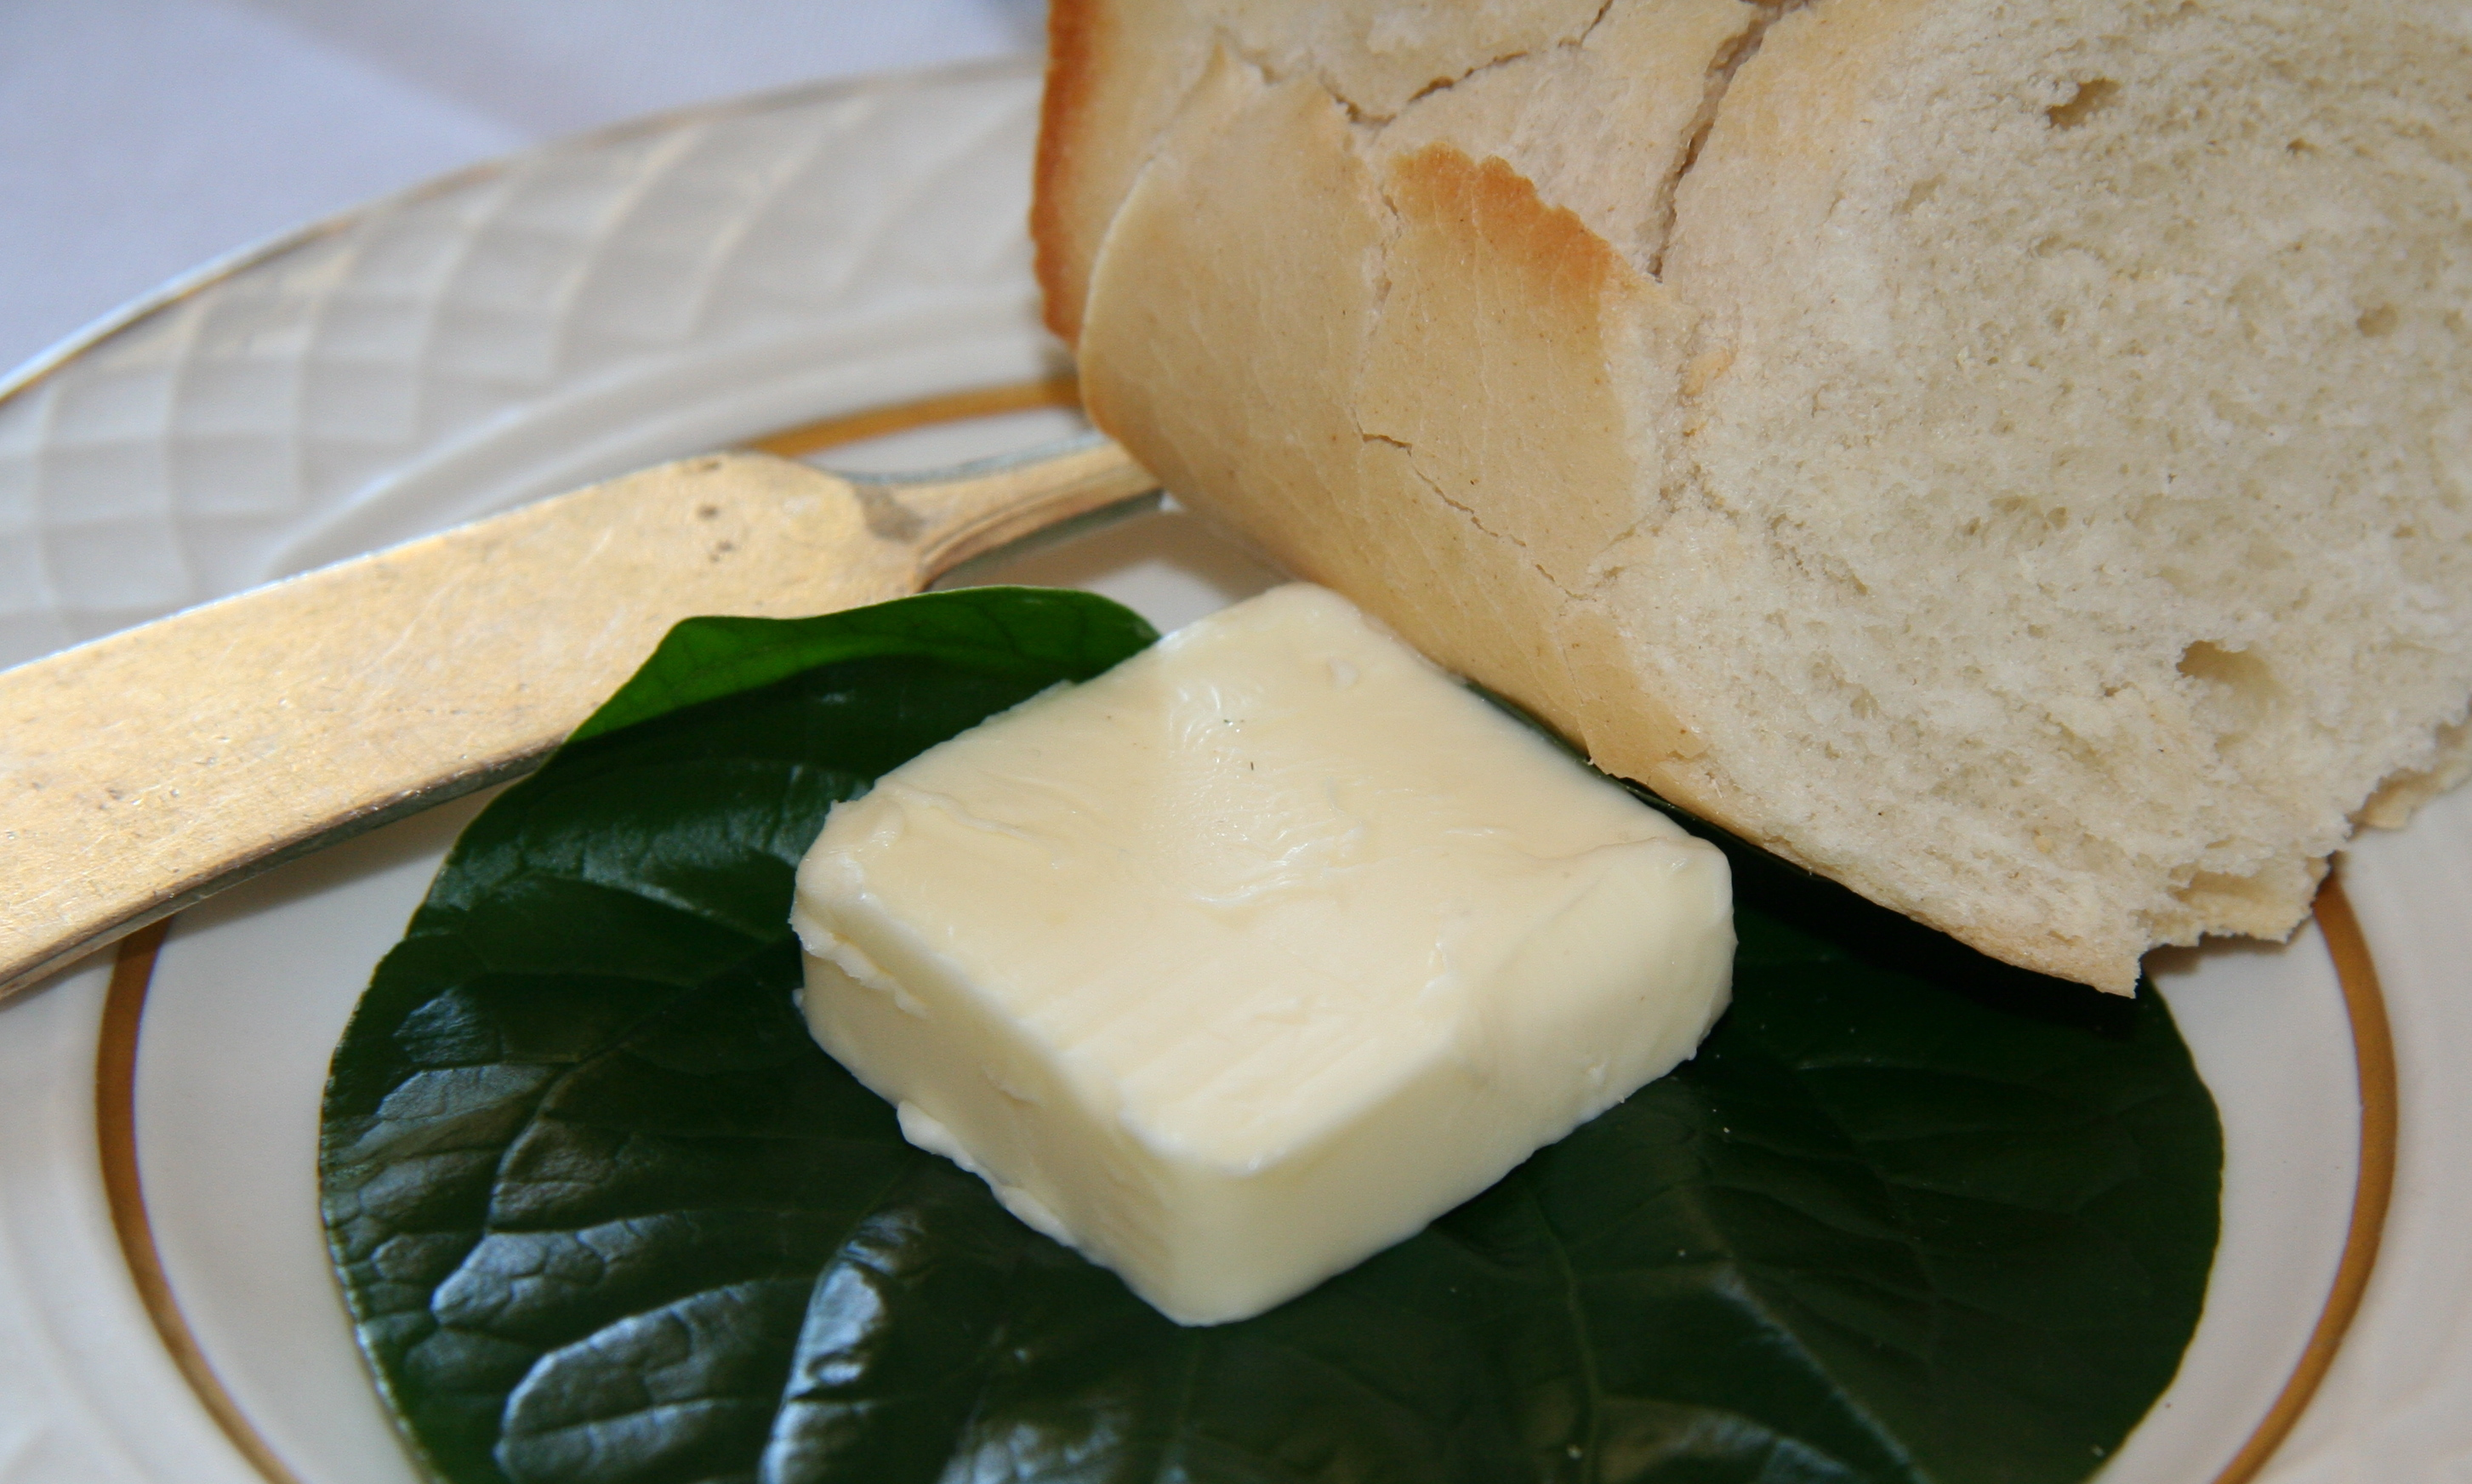 Butter is often served for spreading on bread with a butter knife.